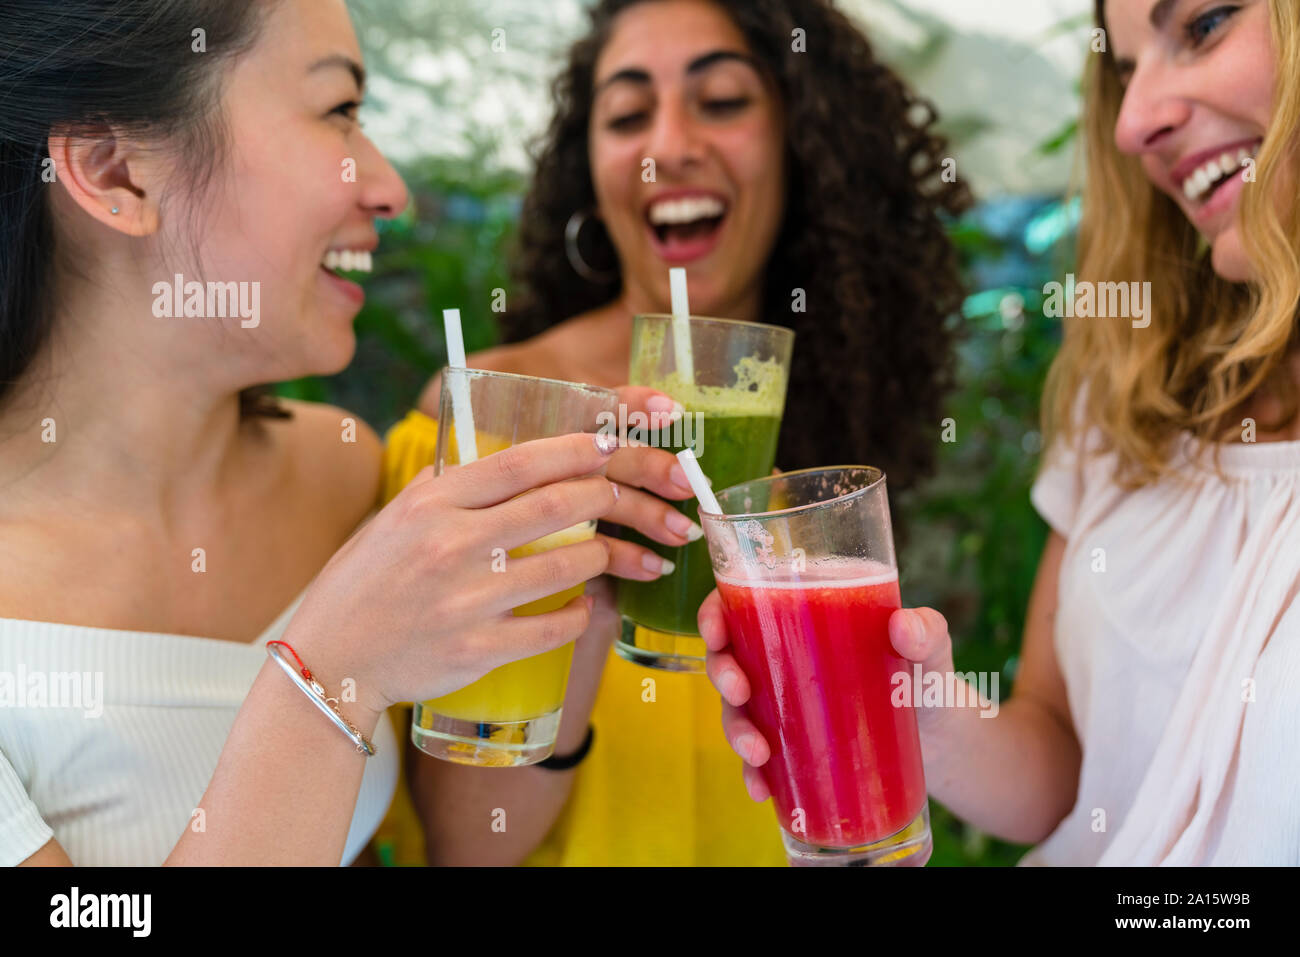 Three happy young women toasting with healthy drinks Stock Photo